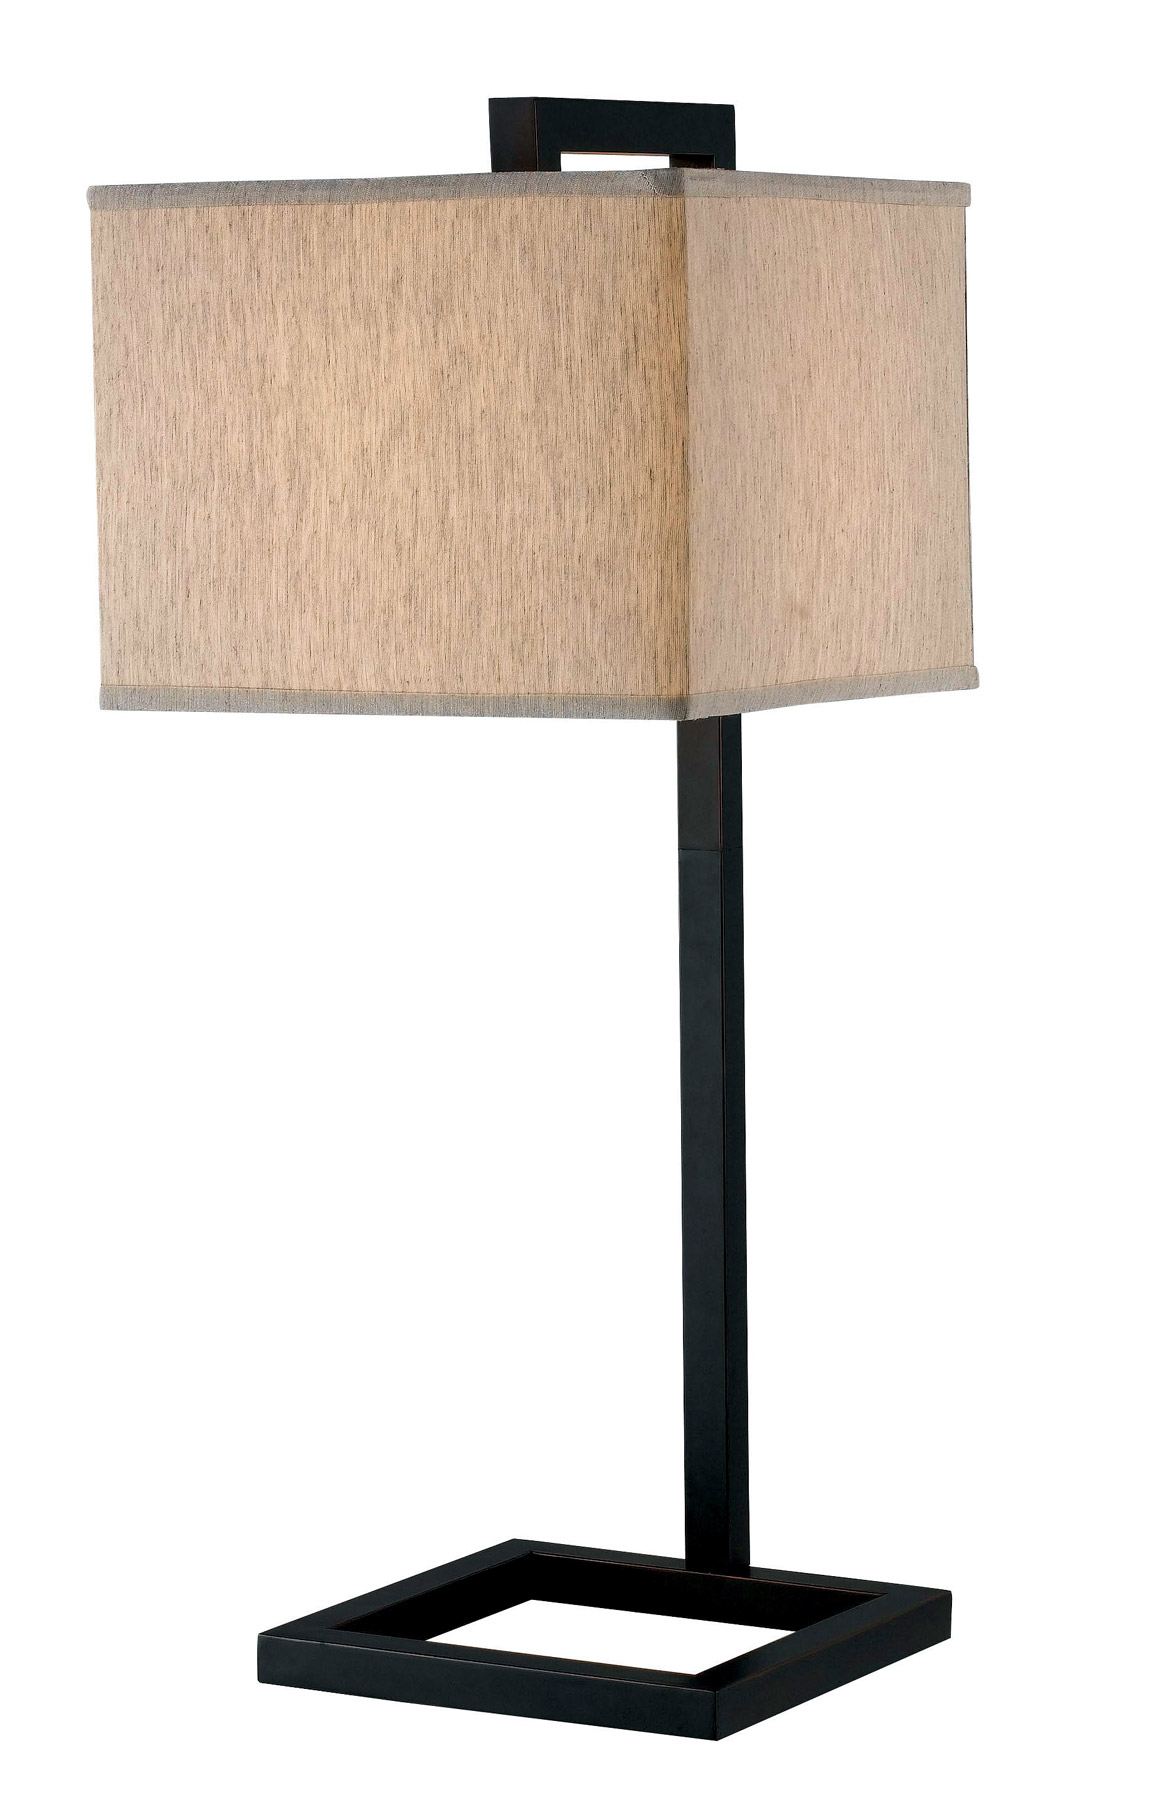 Attractive Kenroy Home 21079ORB 4 Square Desk Lamp